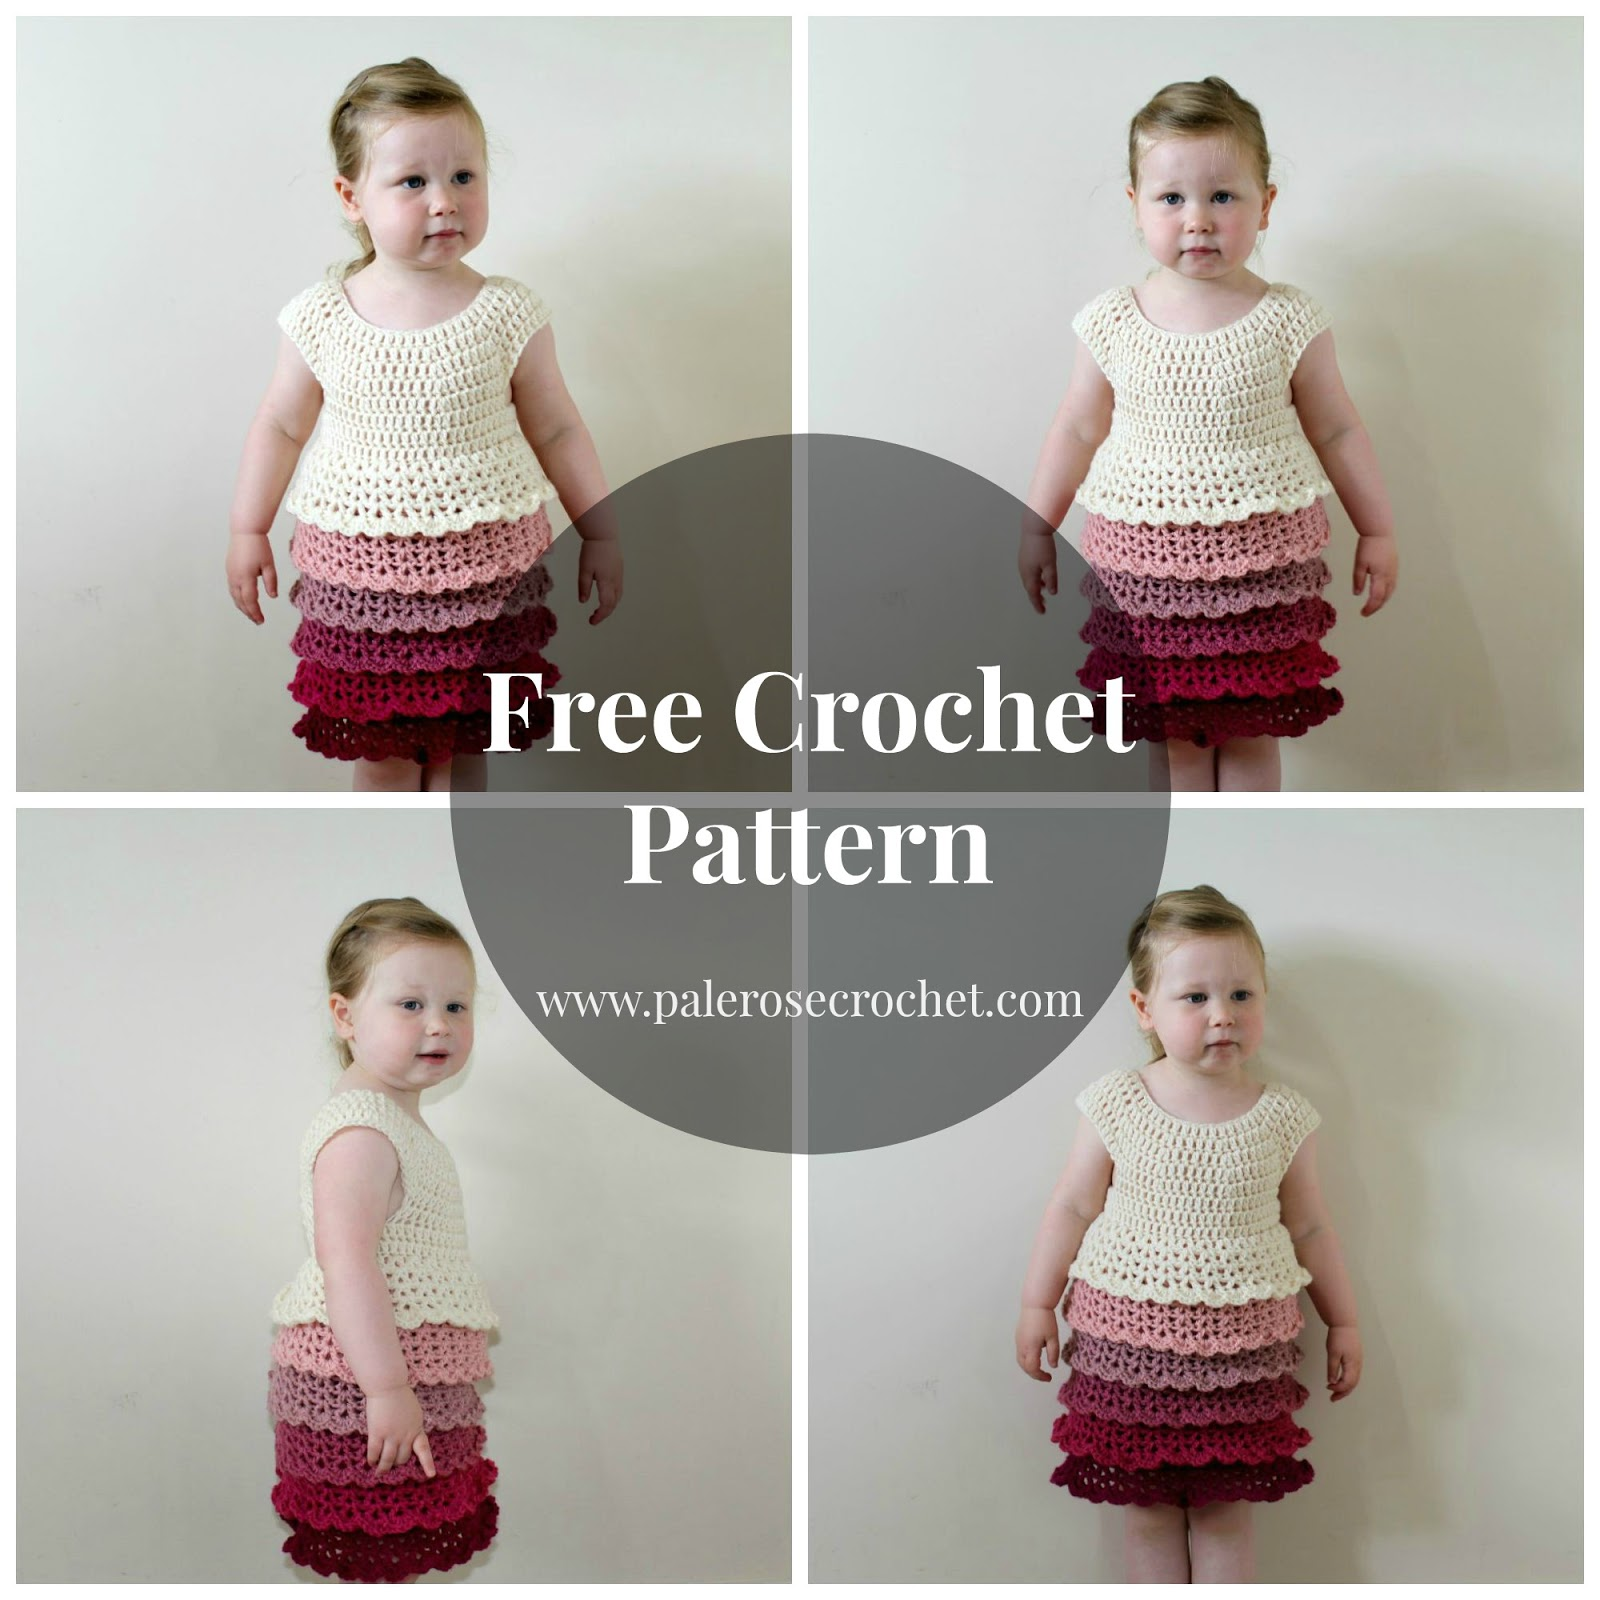 Crochet Patterns Galore - Toddler Layer Frill Dress